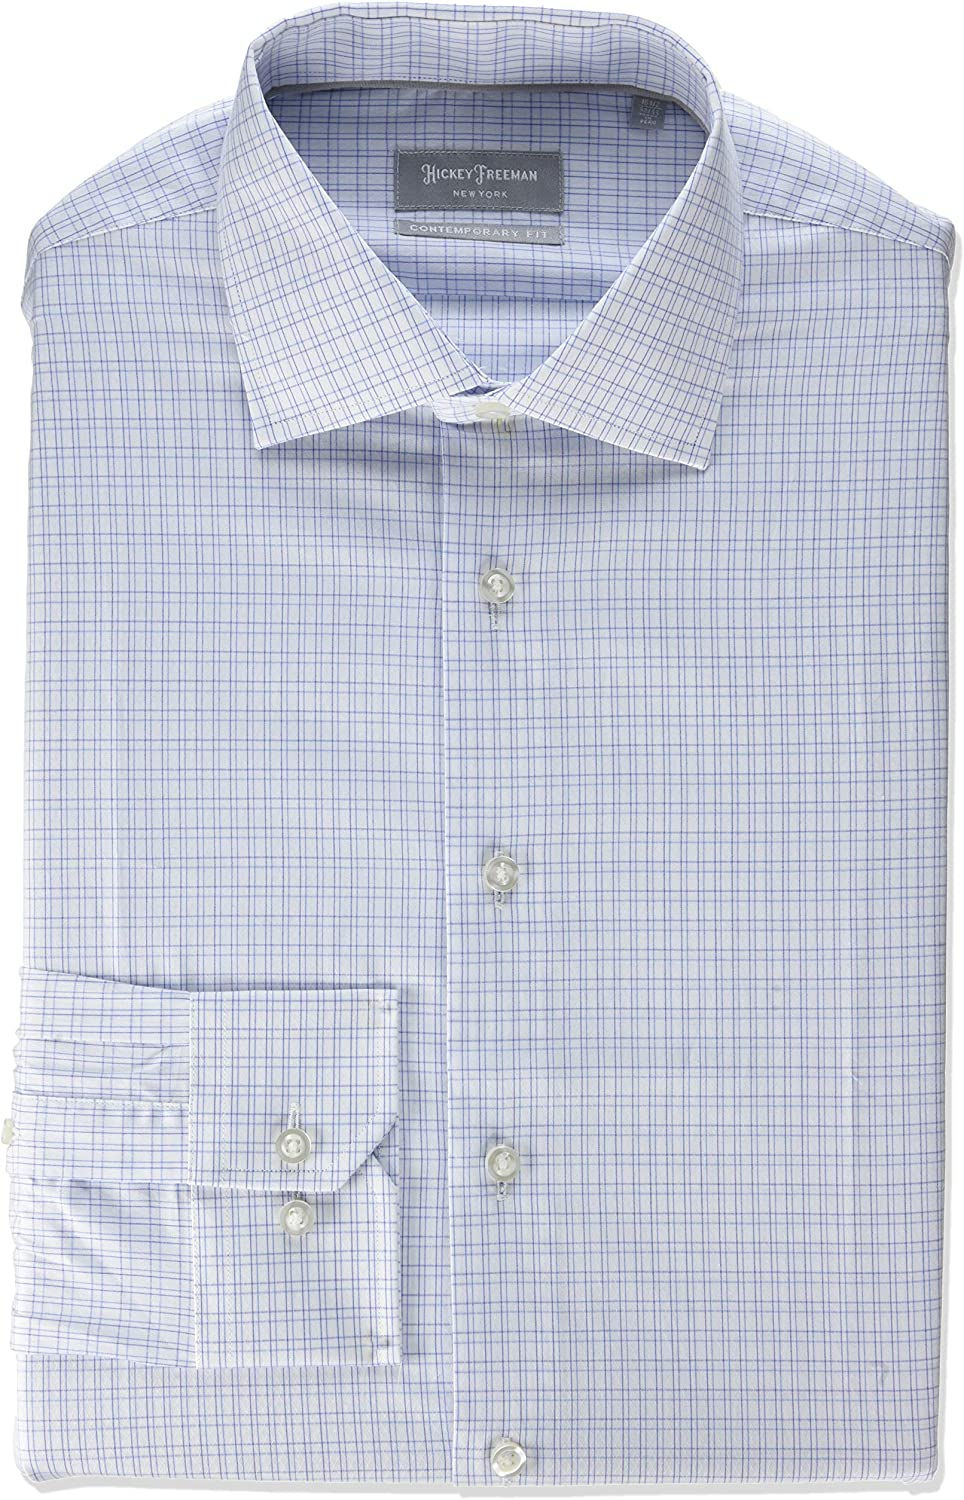 Hickey Freeman Silver Mens Contemporary Fitted Long Sleeve Dress Shirt